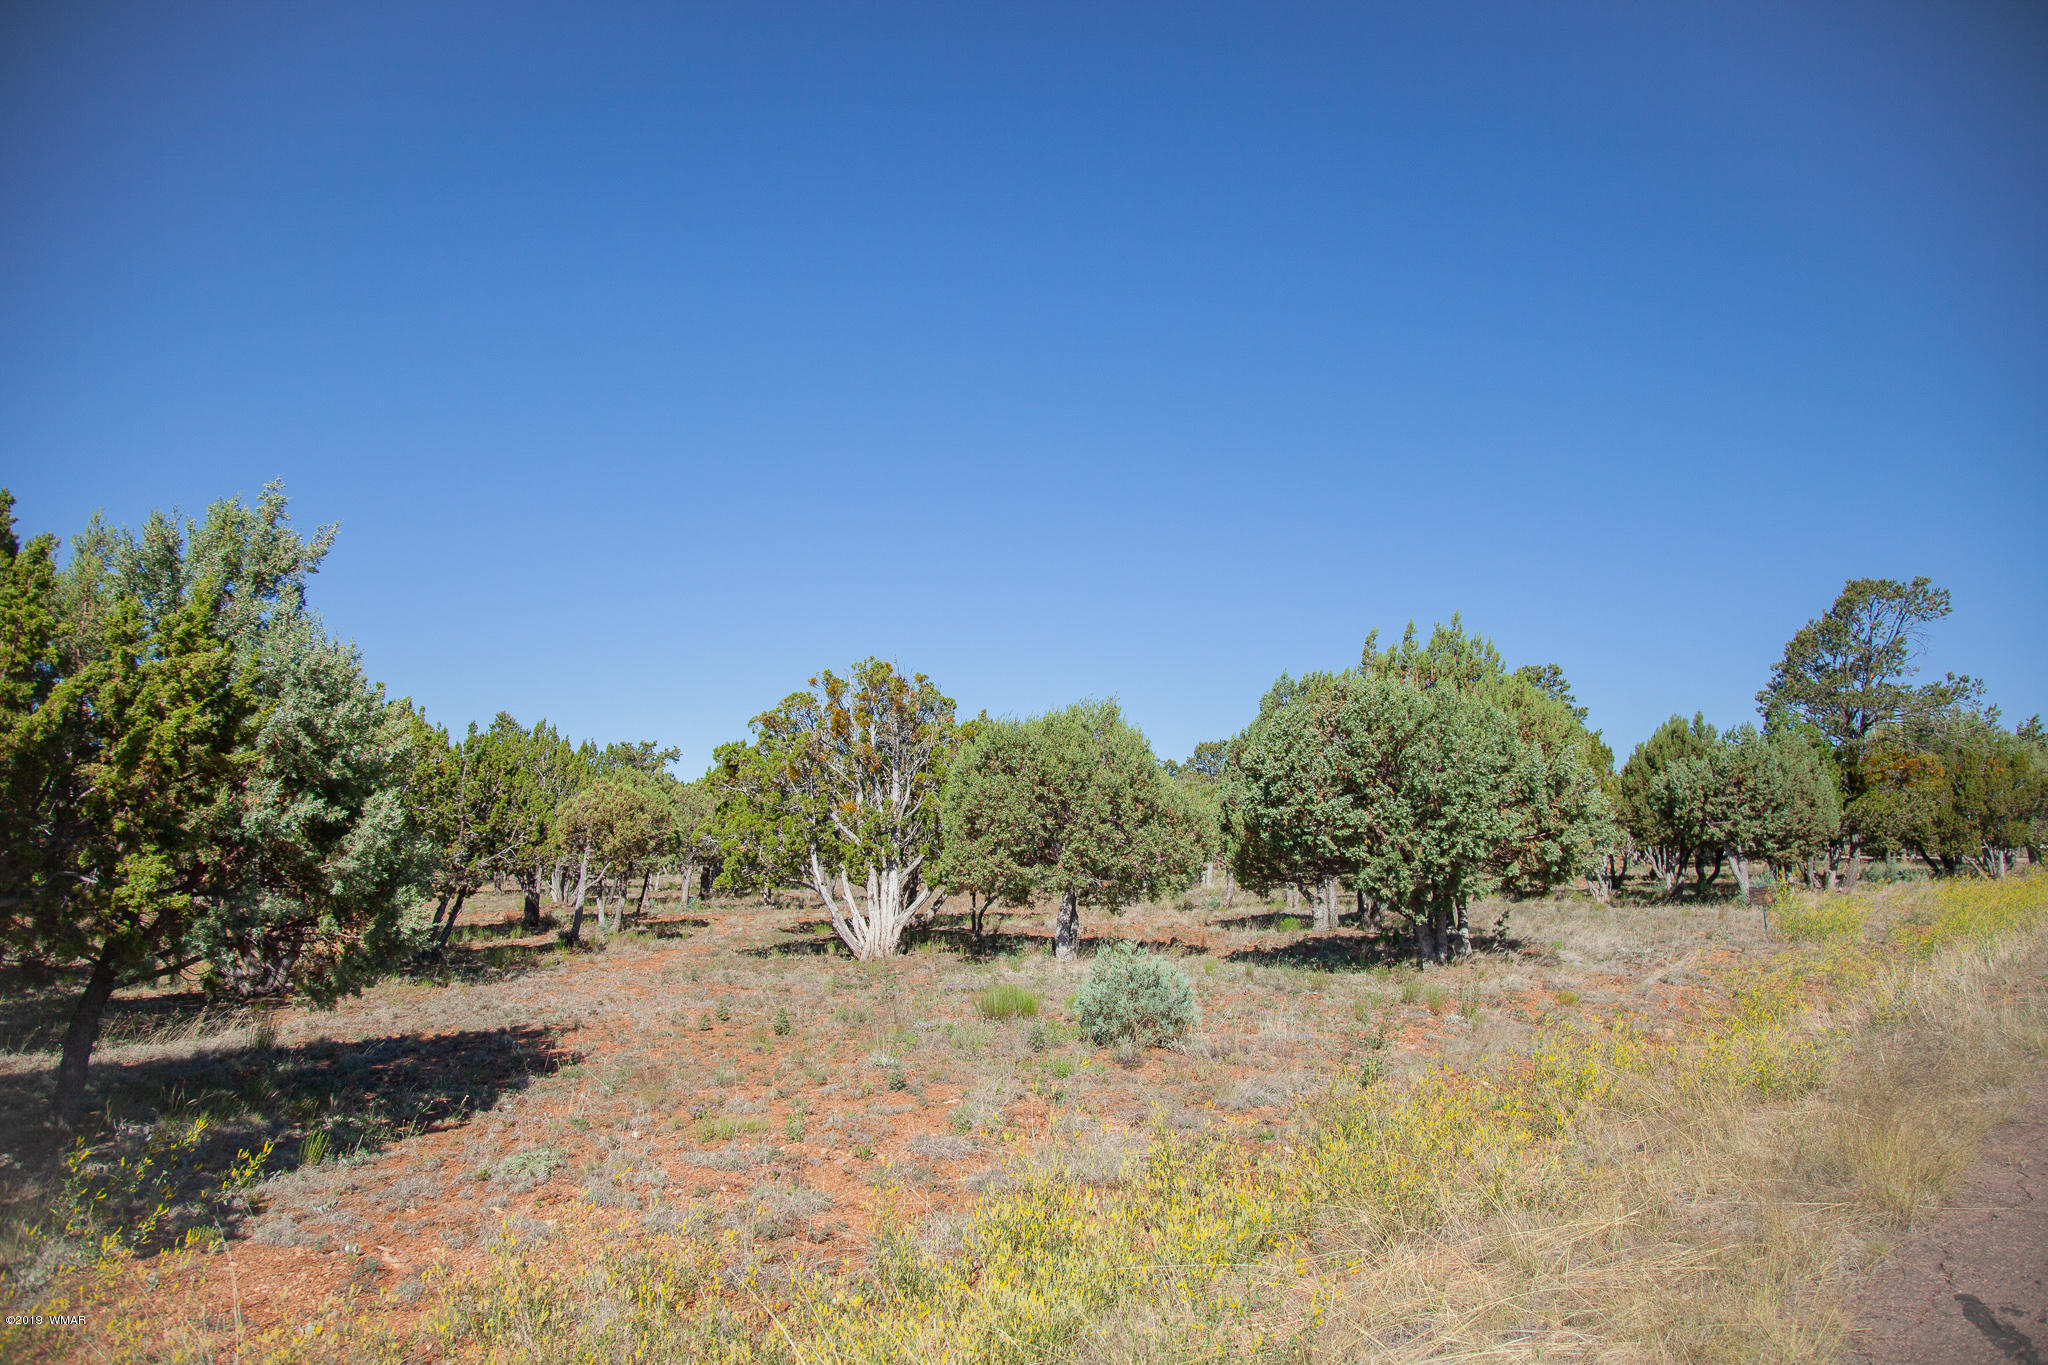 Mogollon Airpark lot for the Pilot enthusiast! This spacious, level lot offers plenty of trees just waiting for a custom built home and hangar. Located on a quiet cul-de-sac w/ taxiway access to the runway. HOA to protect your investment. 2018/2019 Special Assessment paid. Hurry, Call today!